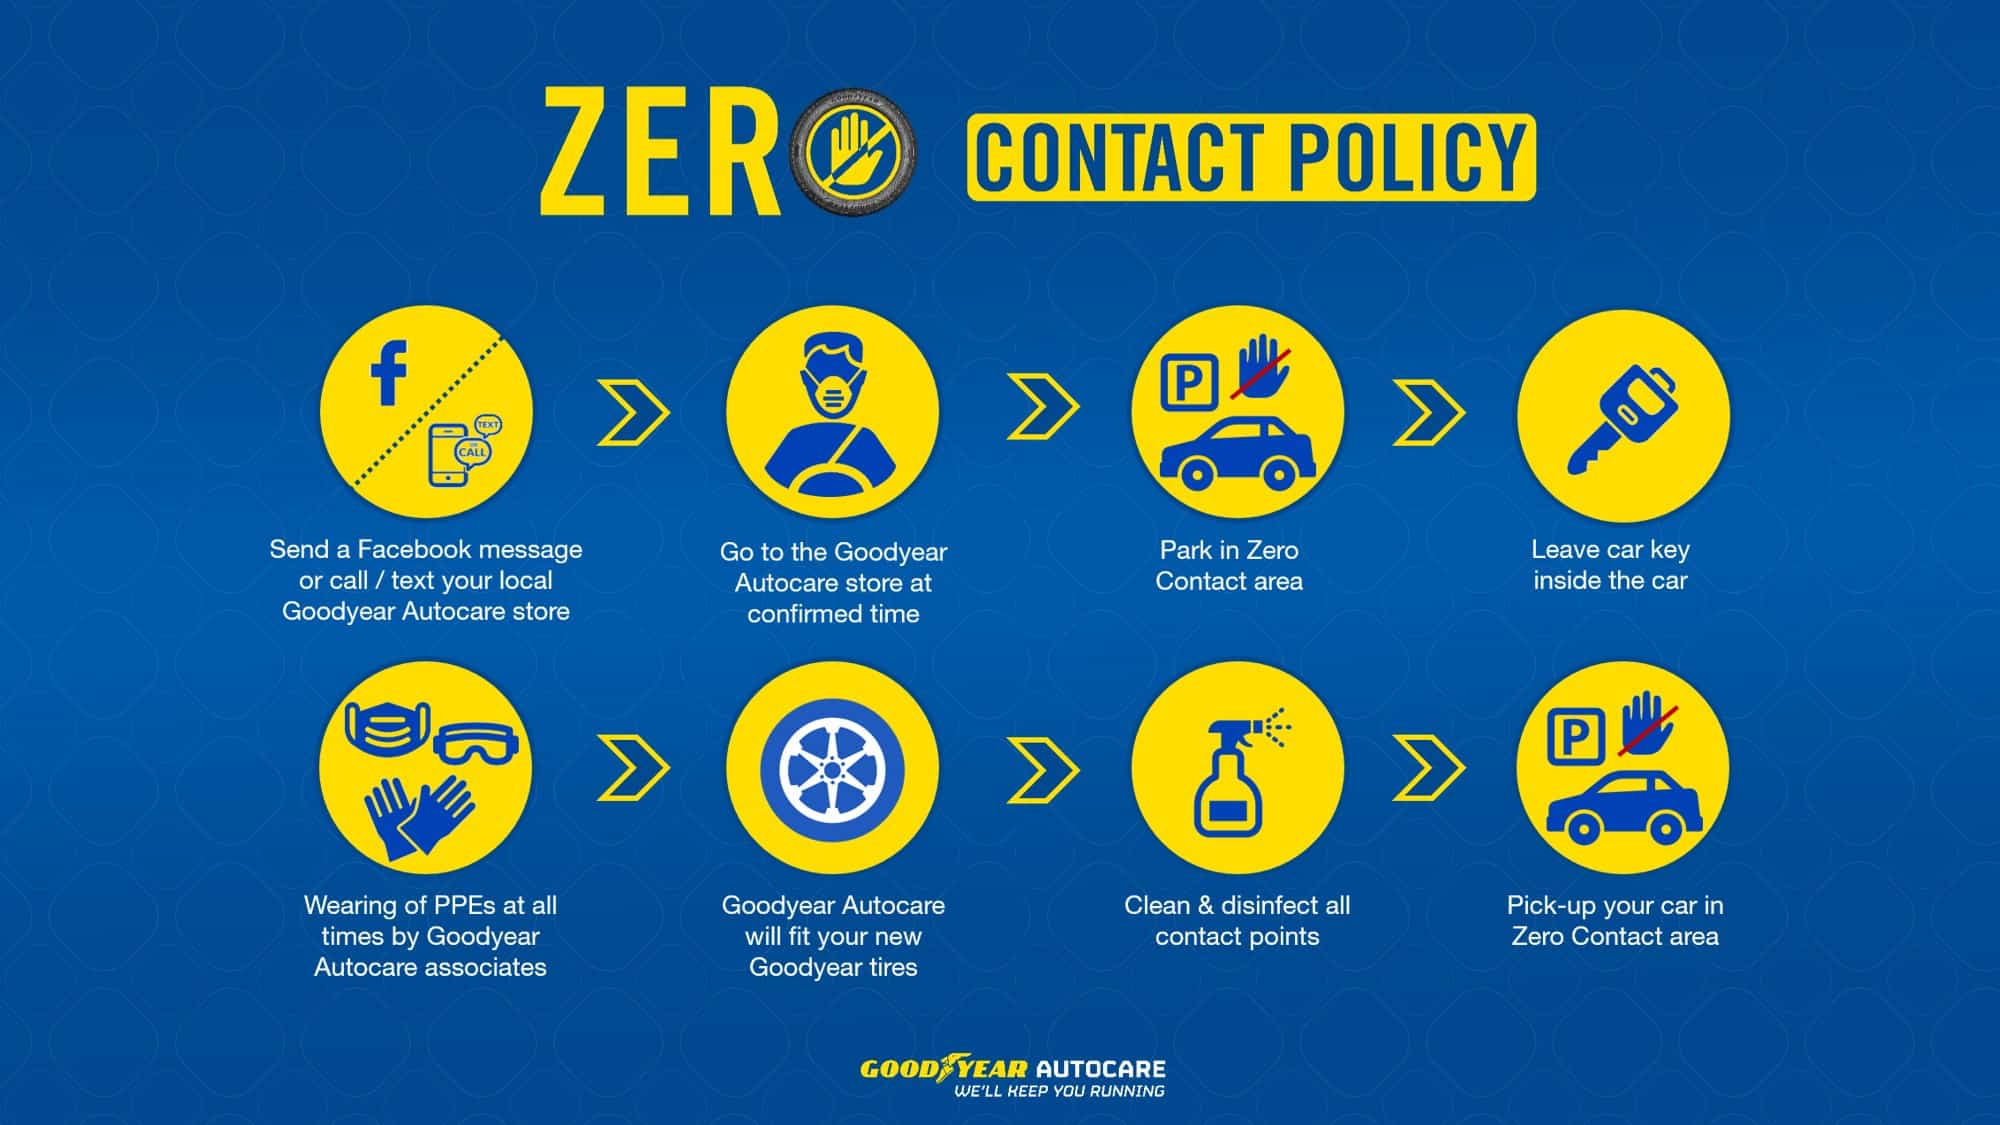 Goodyear Introduces Zero Contact Policy In Its Autocare Network